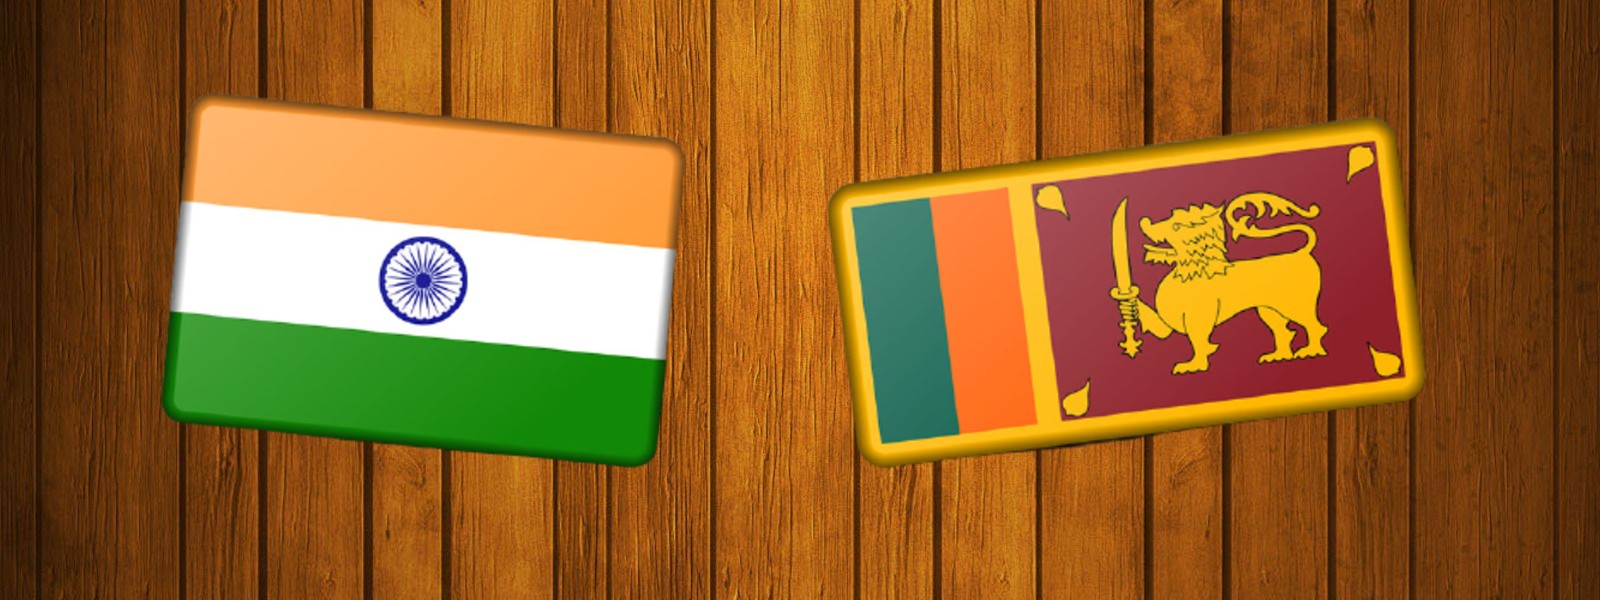 India expects Sri Lanka to remain mindful of bilateral ties; Spokesperson